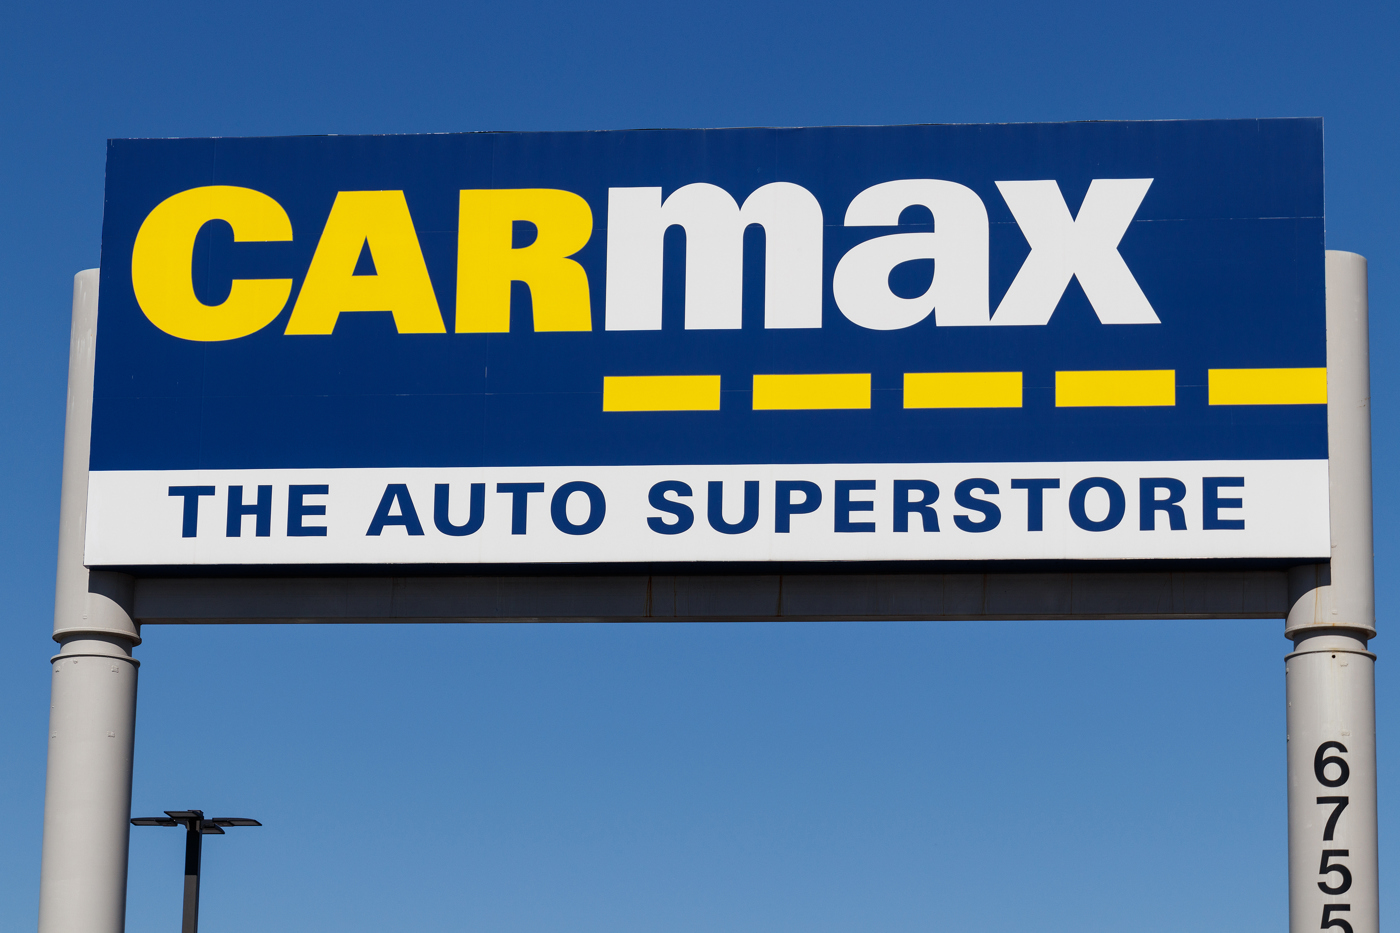 CarMax stock, KMX stock, auto stocks, car stocks